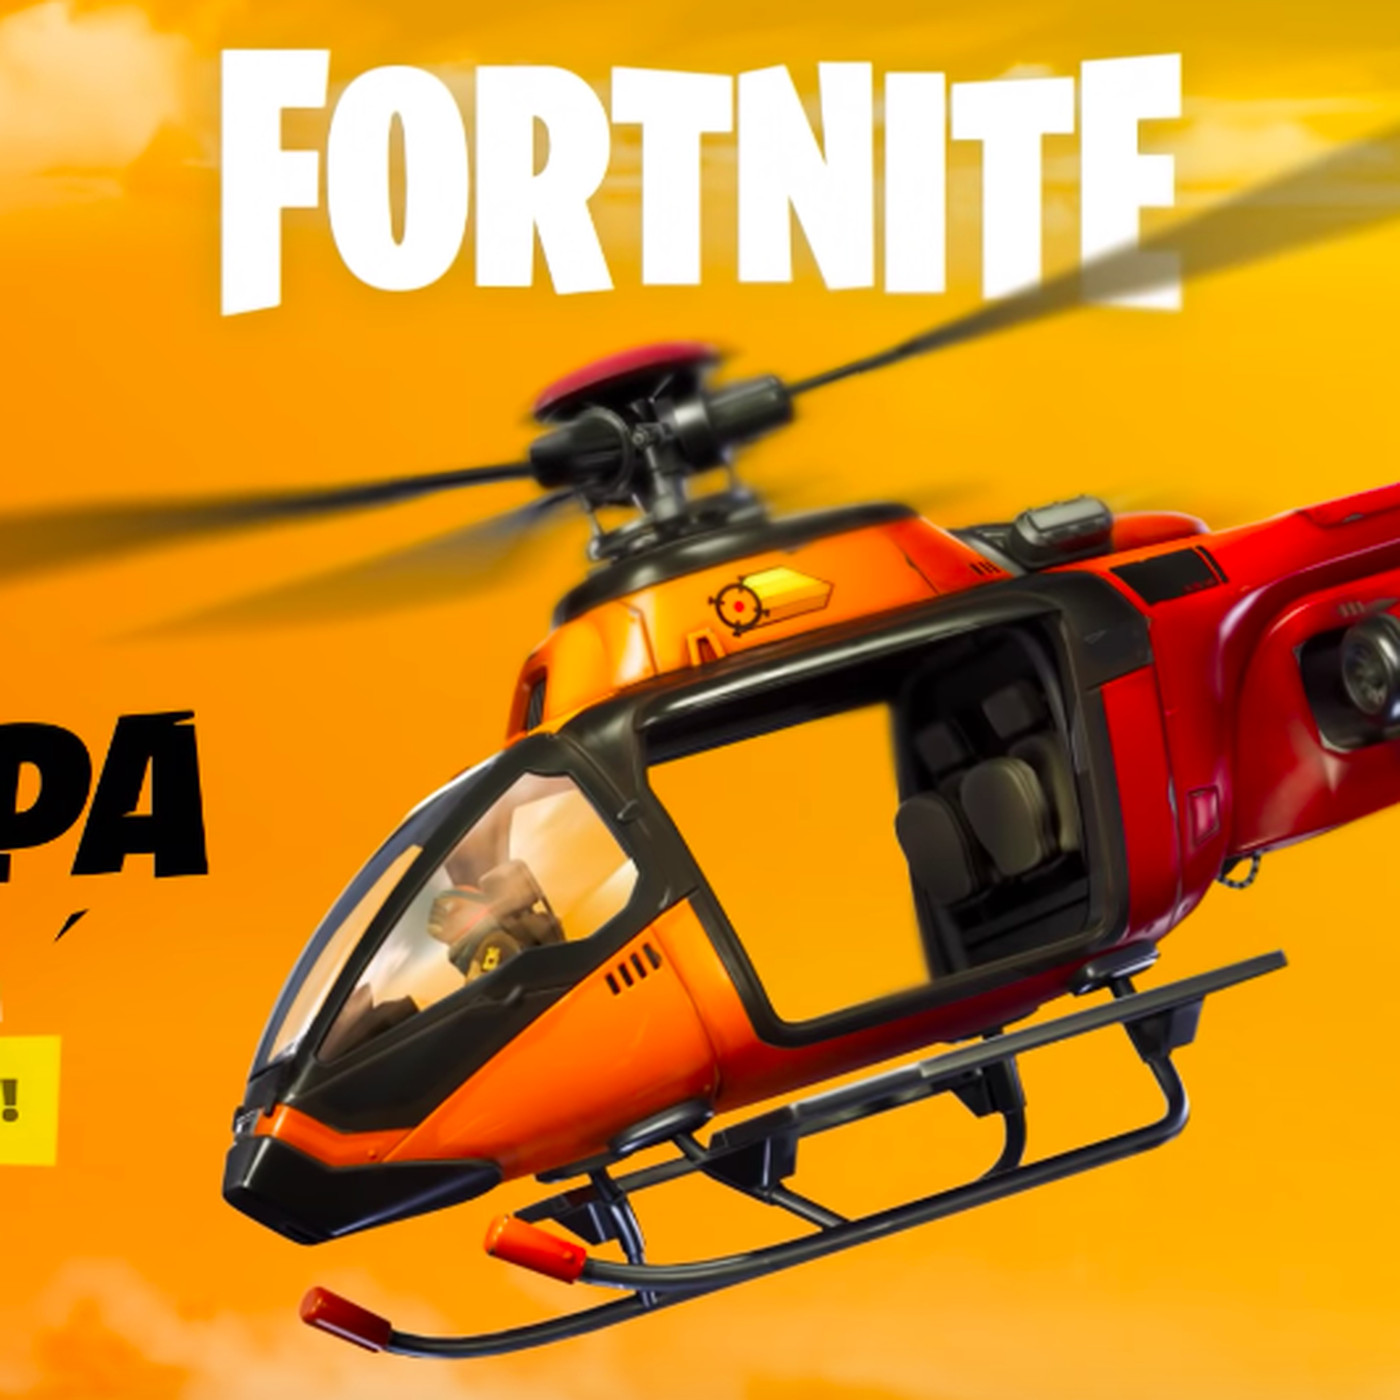 Fortnite Has Helicopters Now The Verge